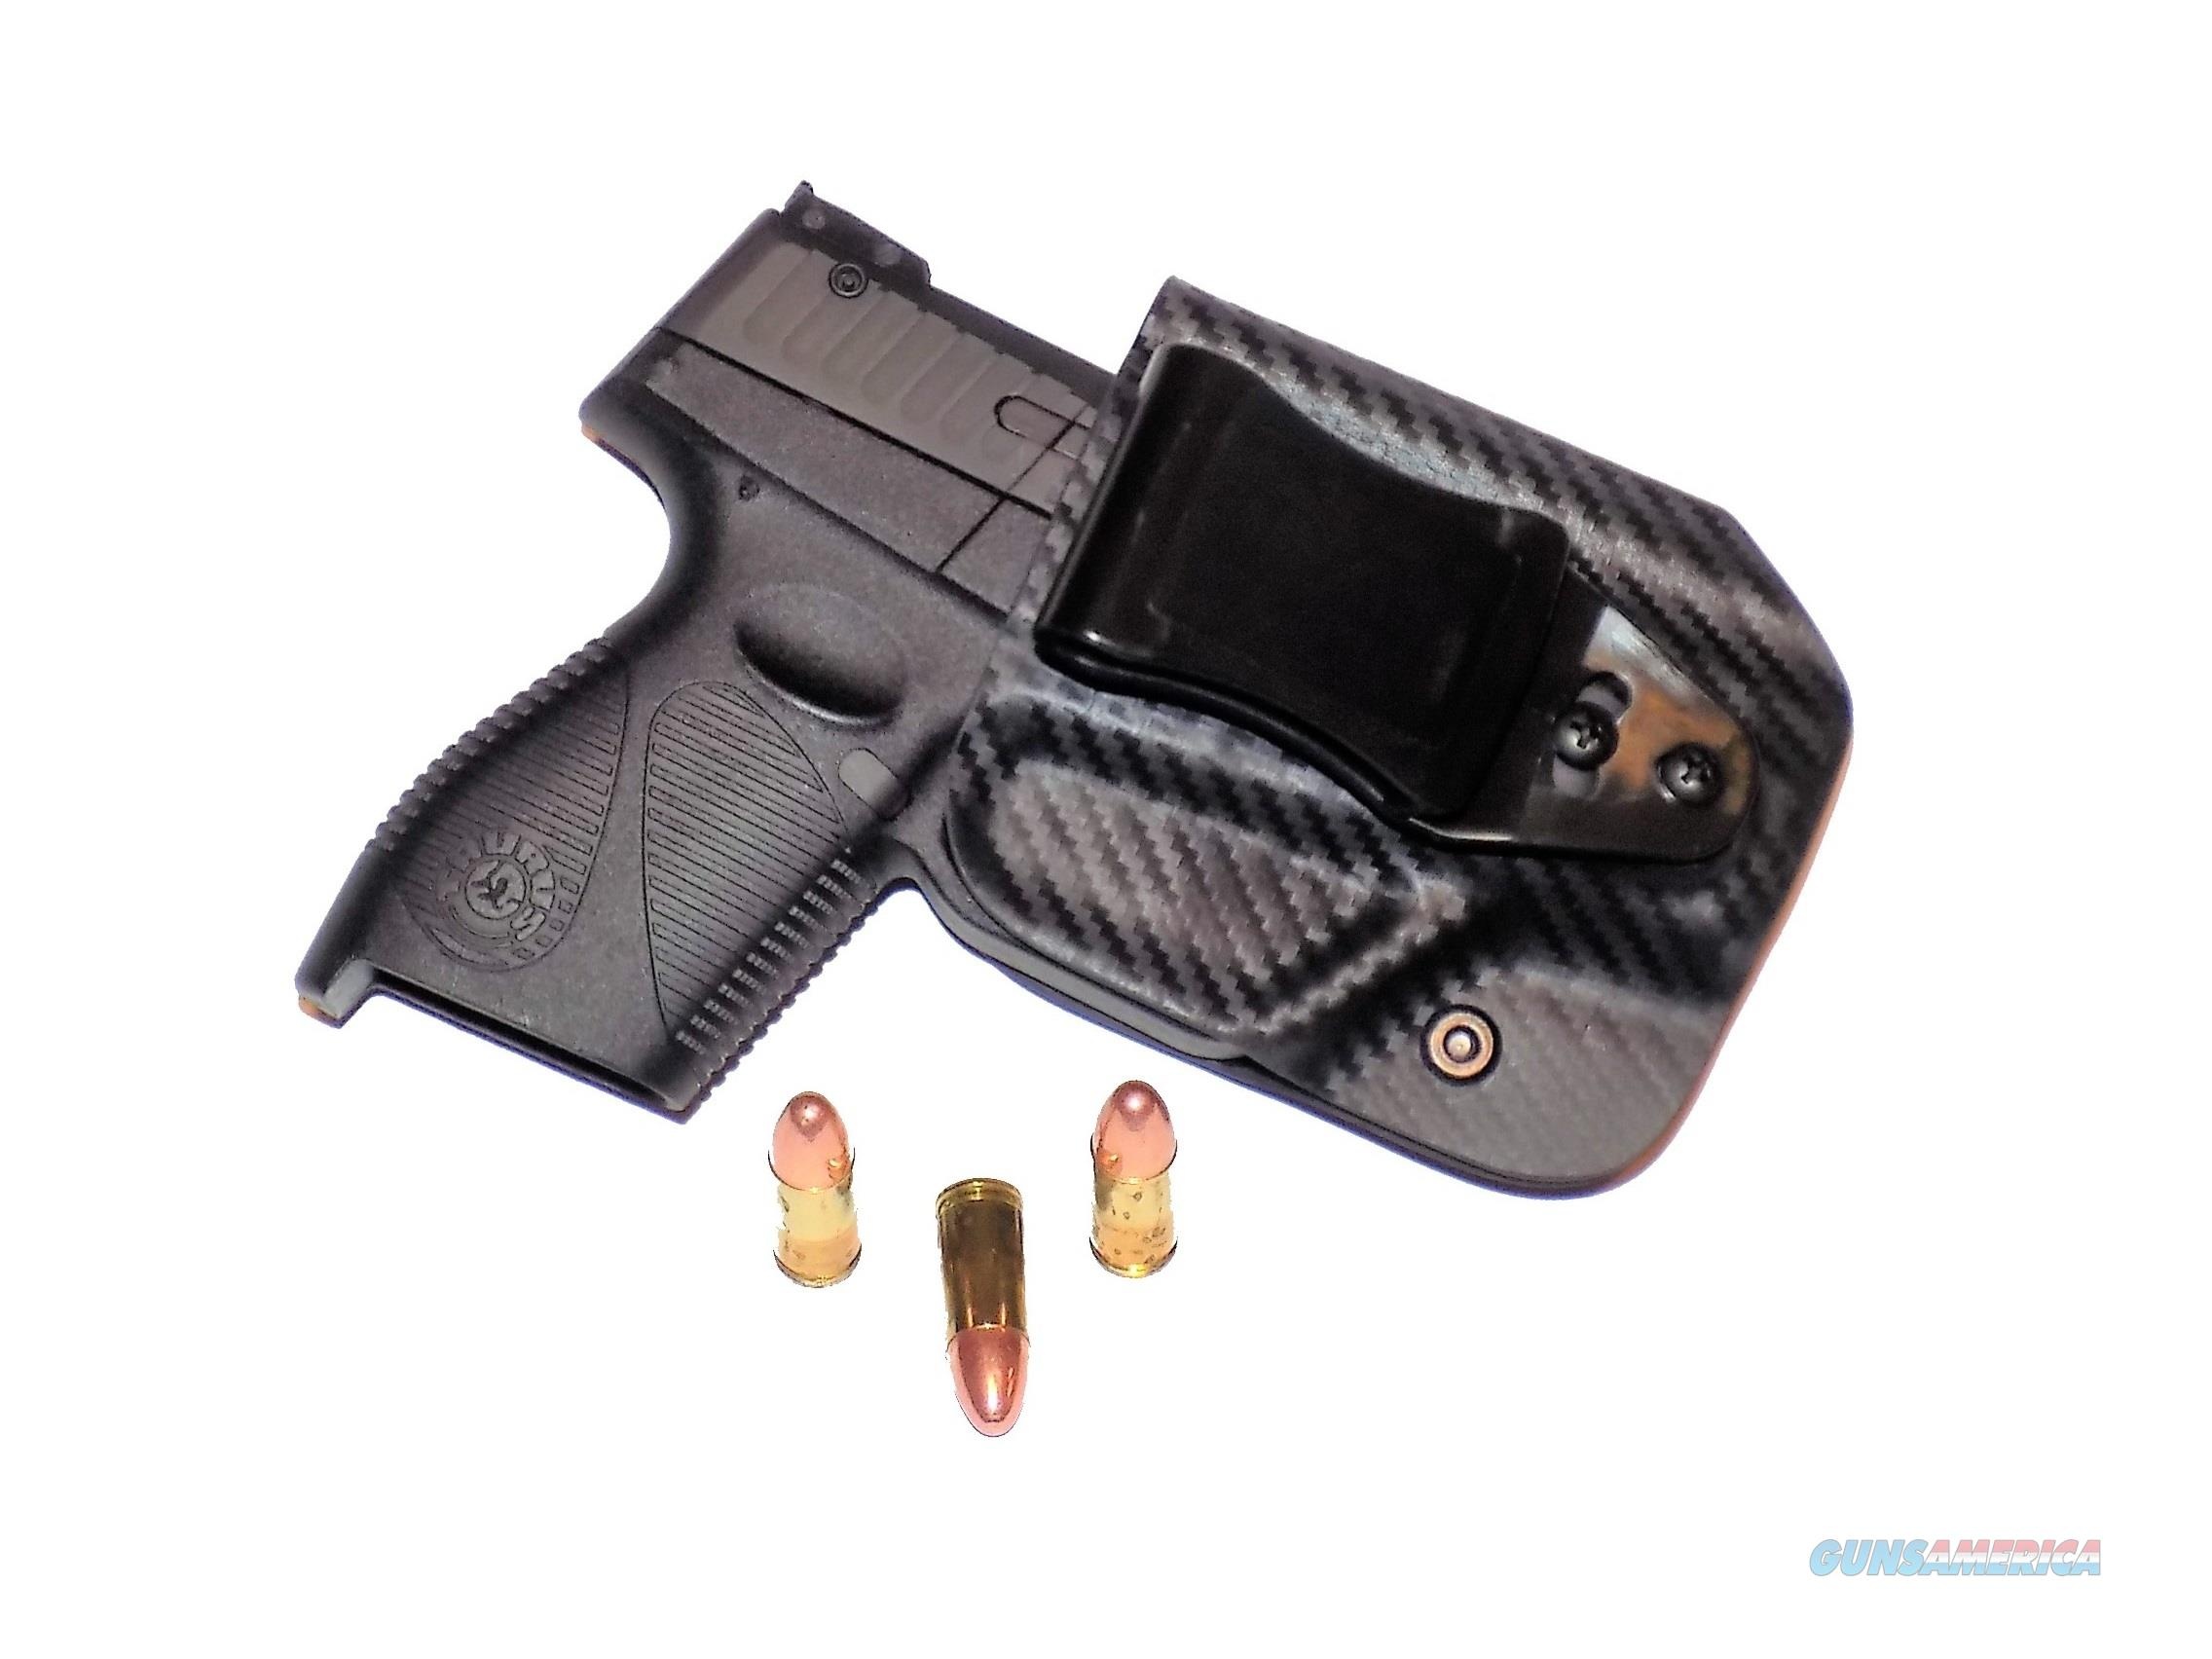 Aggressive Concealment PTIWBLPTCF-RH Tuckable IWB Kydex Holster for The Taurus PT709/PT740 slim  Non-Guns > Holsters and Gunleather > Concealed Carry